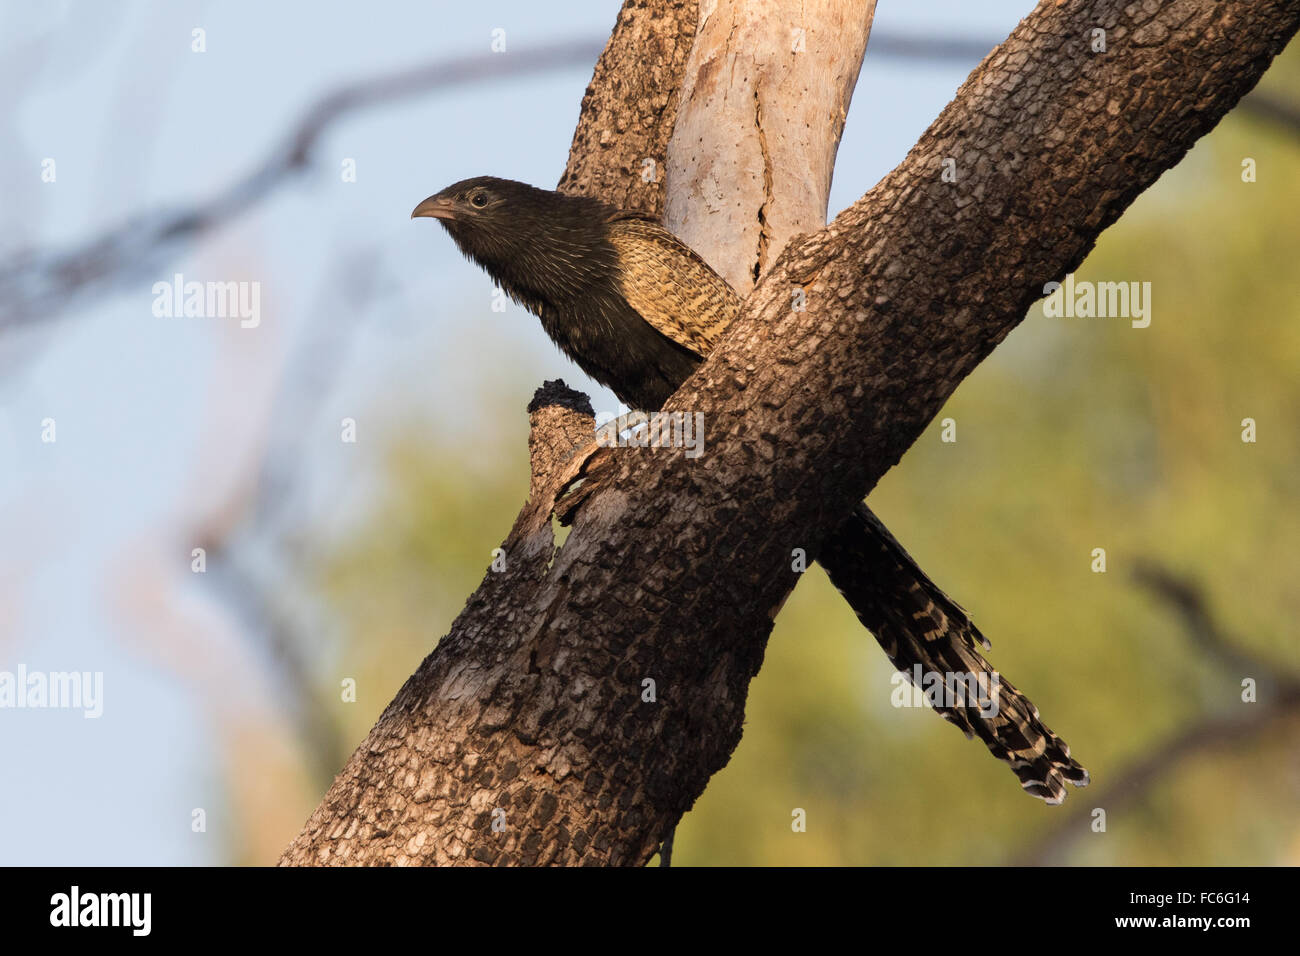 Pheasant Coucal (Centropus phasianinus) in breeding plumage - Stock Image